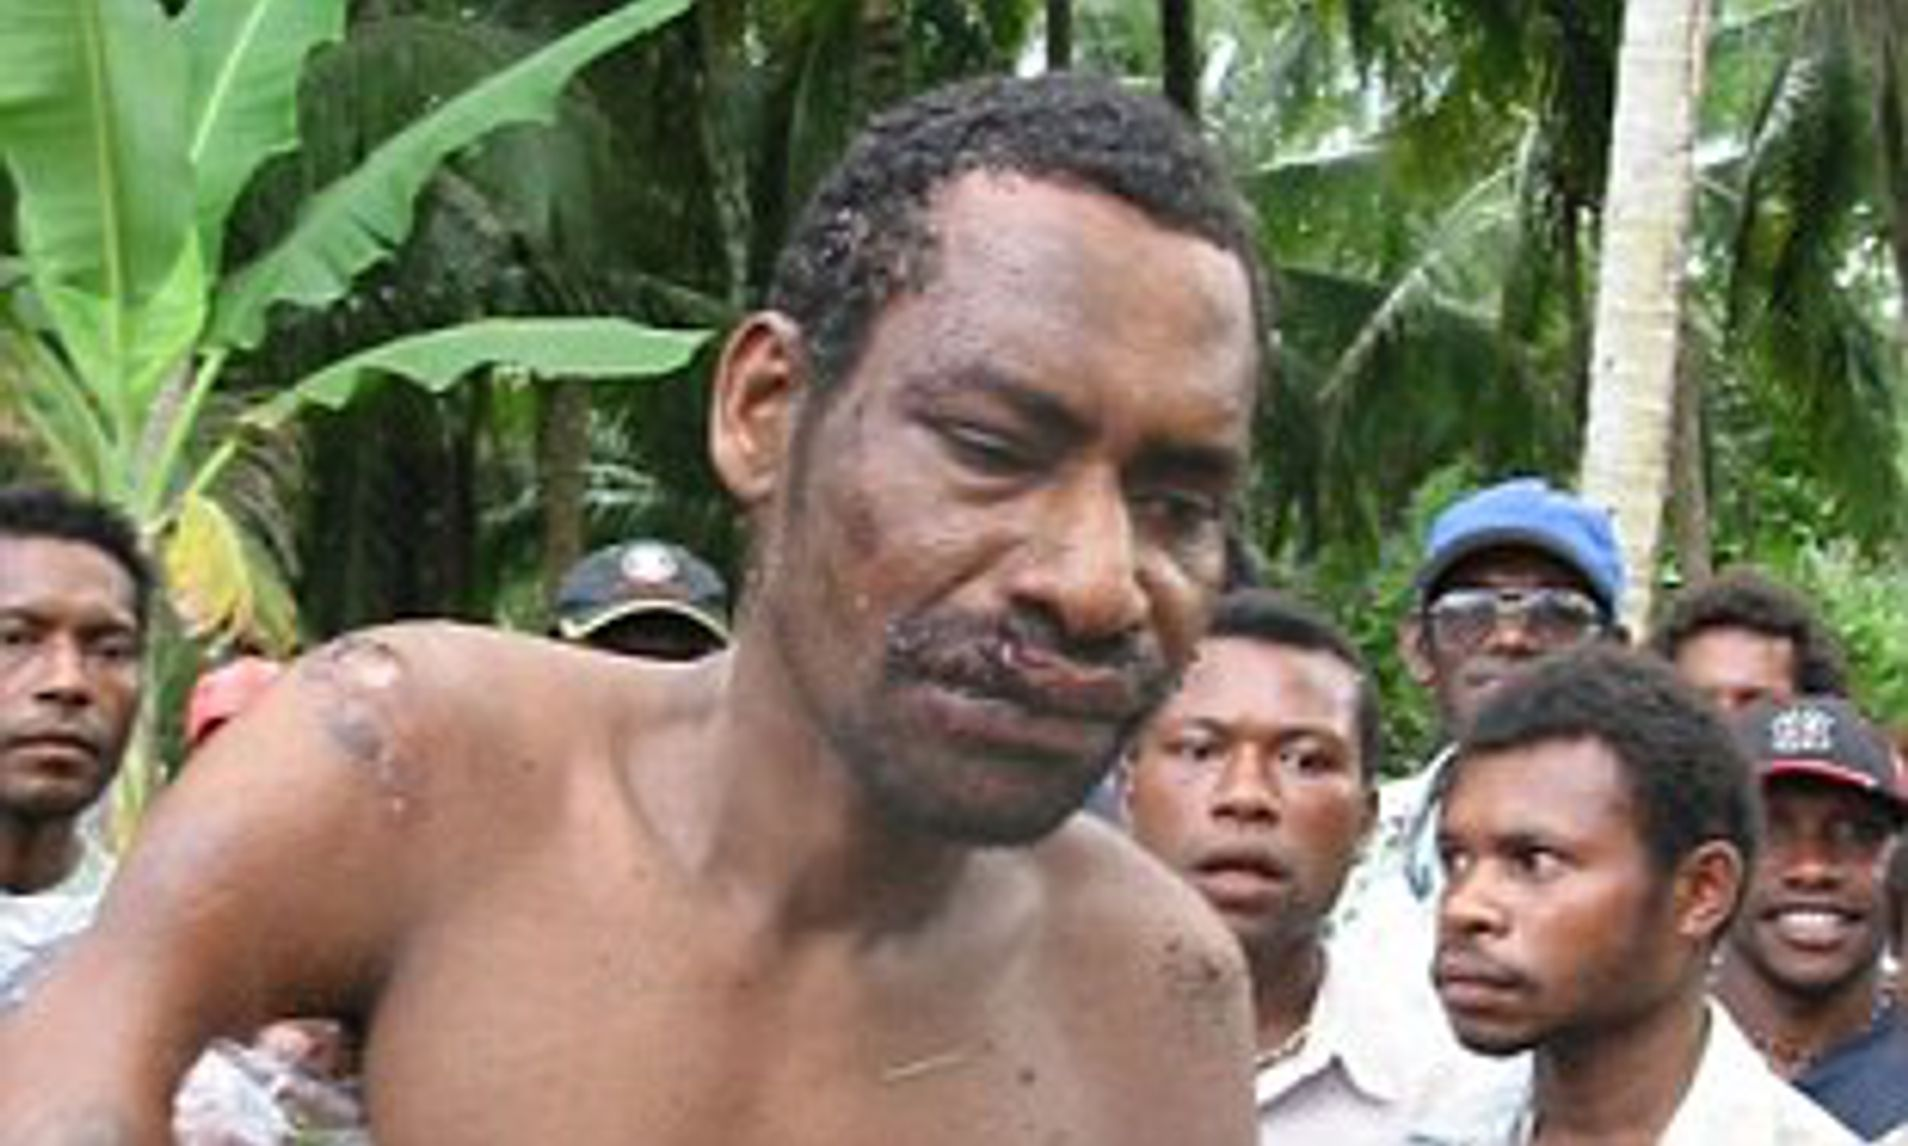 Papua New Guinea\'s Black Jesus guilty of raping young girls.